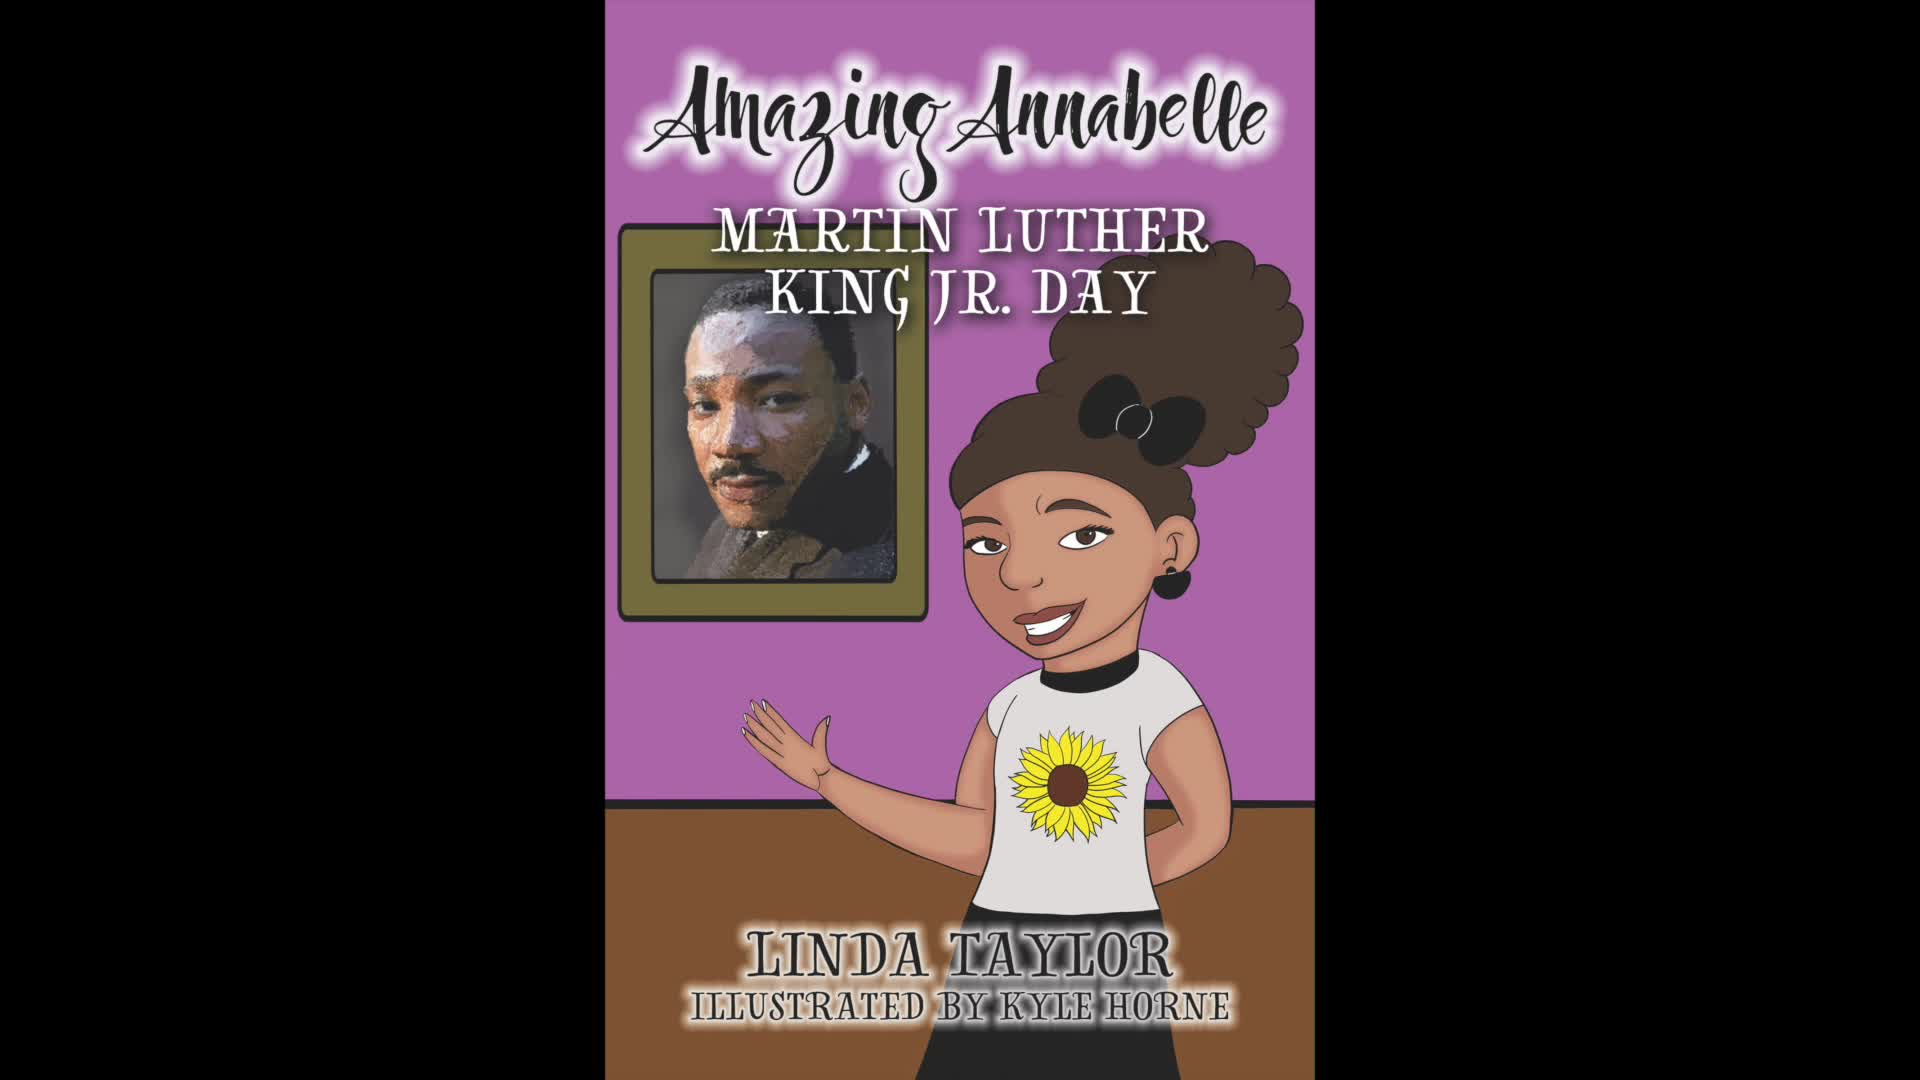 Amazing Annabelle Martin Luther King Jr Day Chapter 4